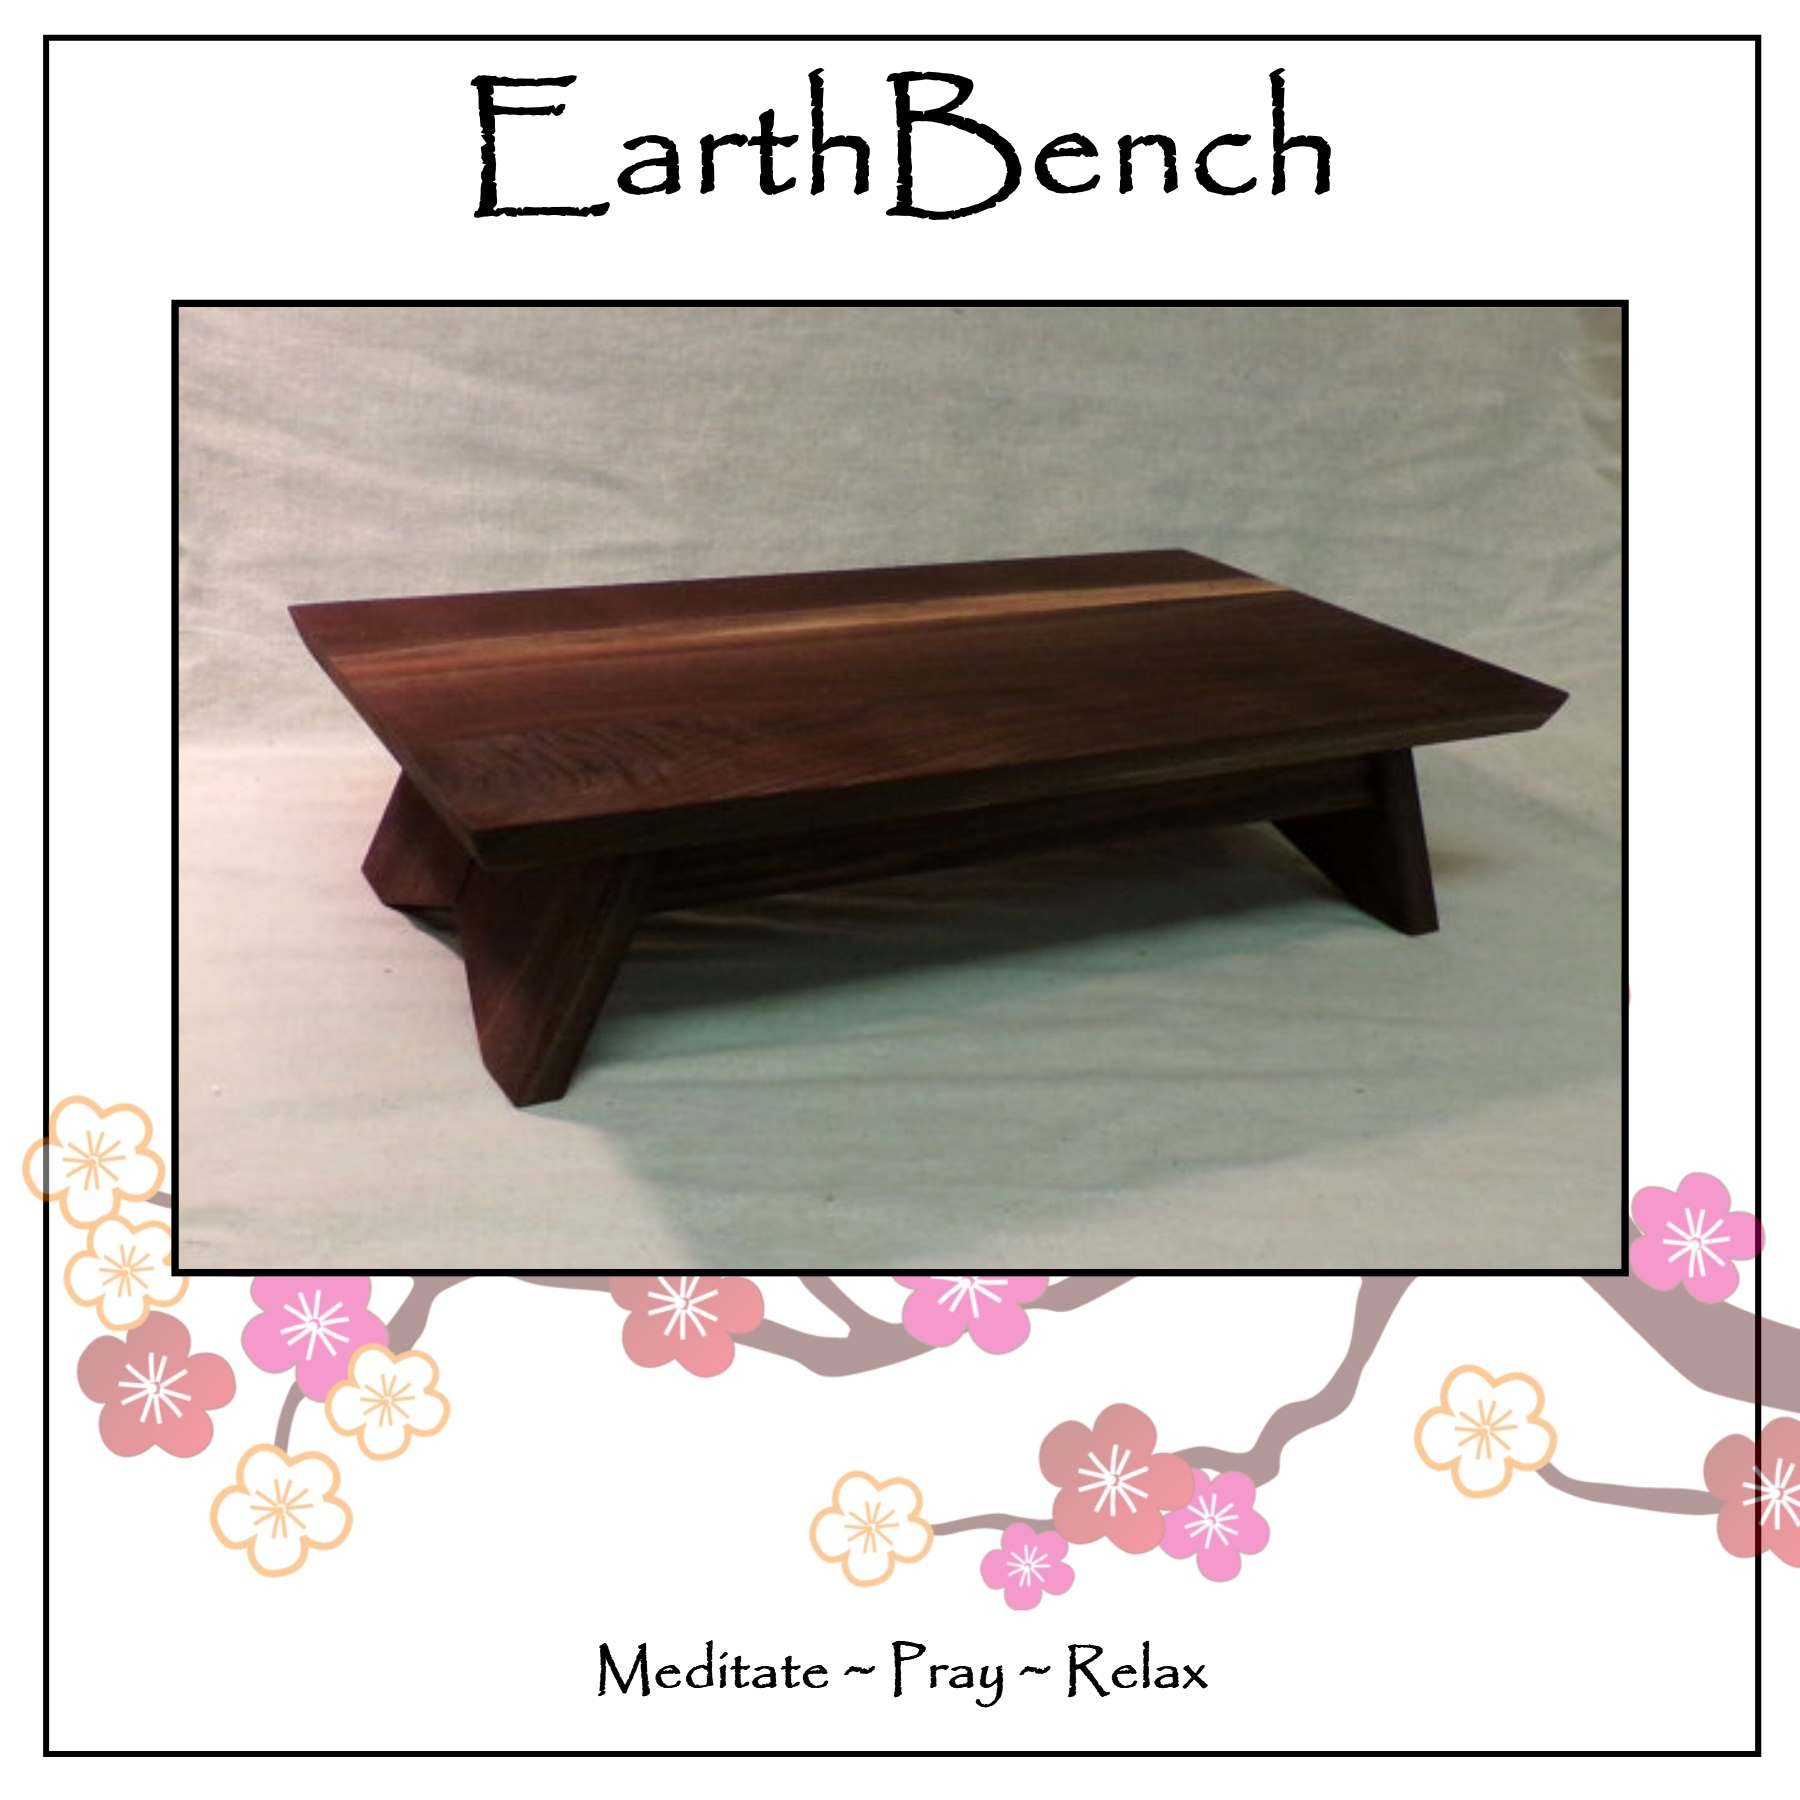 EarthBench Shrine Table - Large-sized Petite Floor Altar (7'' inches tall ~ 23.5'' by 13.5'') - Solid DARK WALNUT Construction. For Meditation, Prayer, or Contemplative Studies.